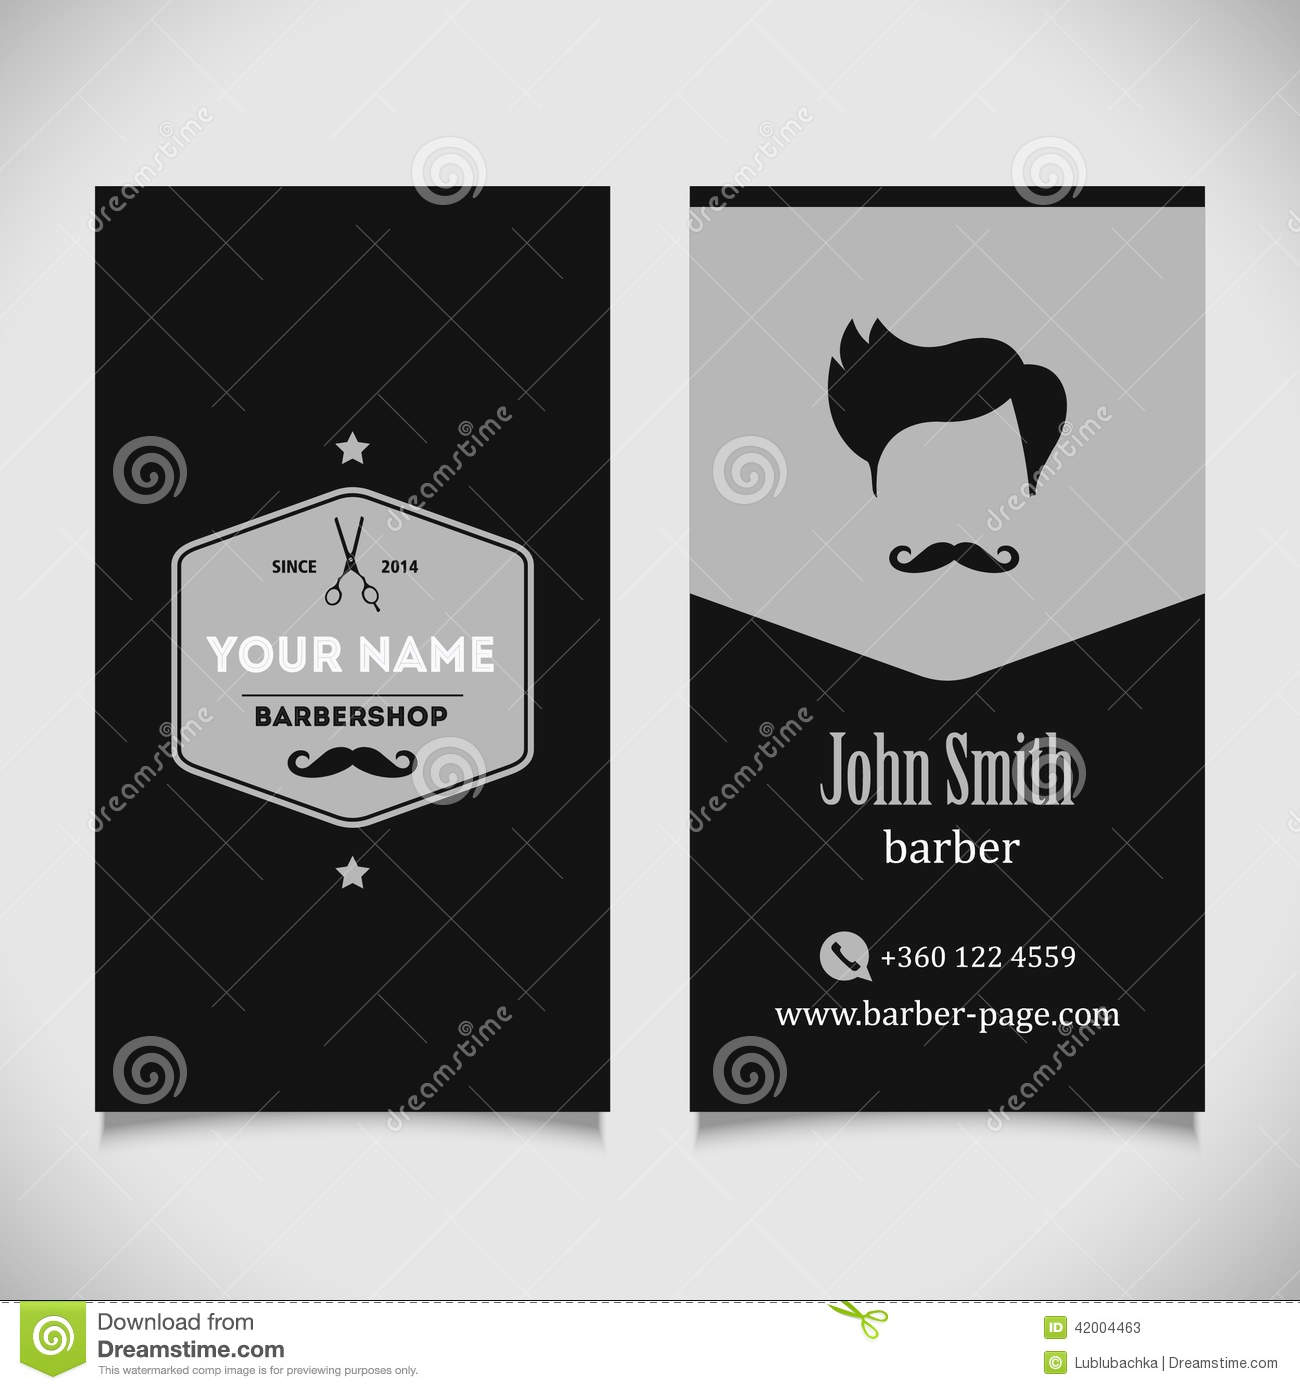 Hair Salon Barber Shop Business Card Design Stock Vector - Image ...